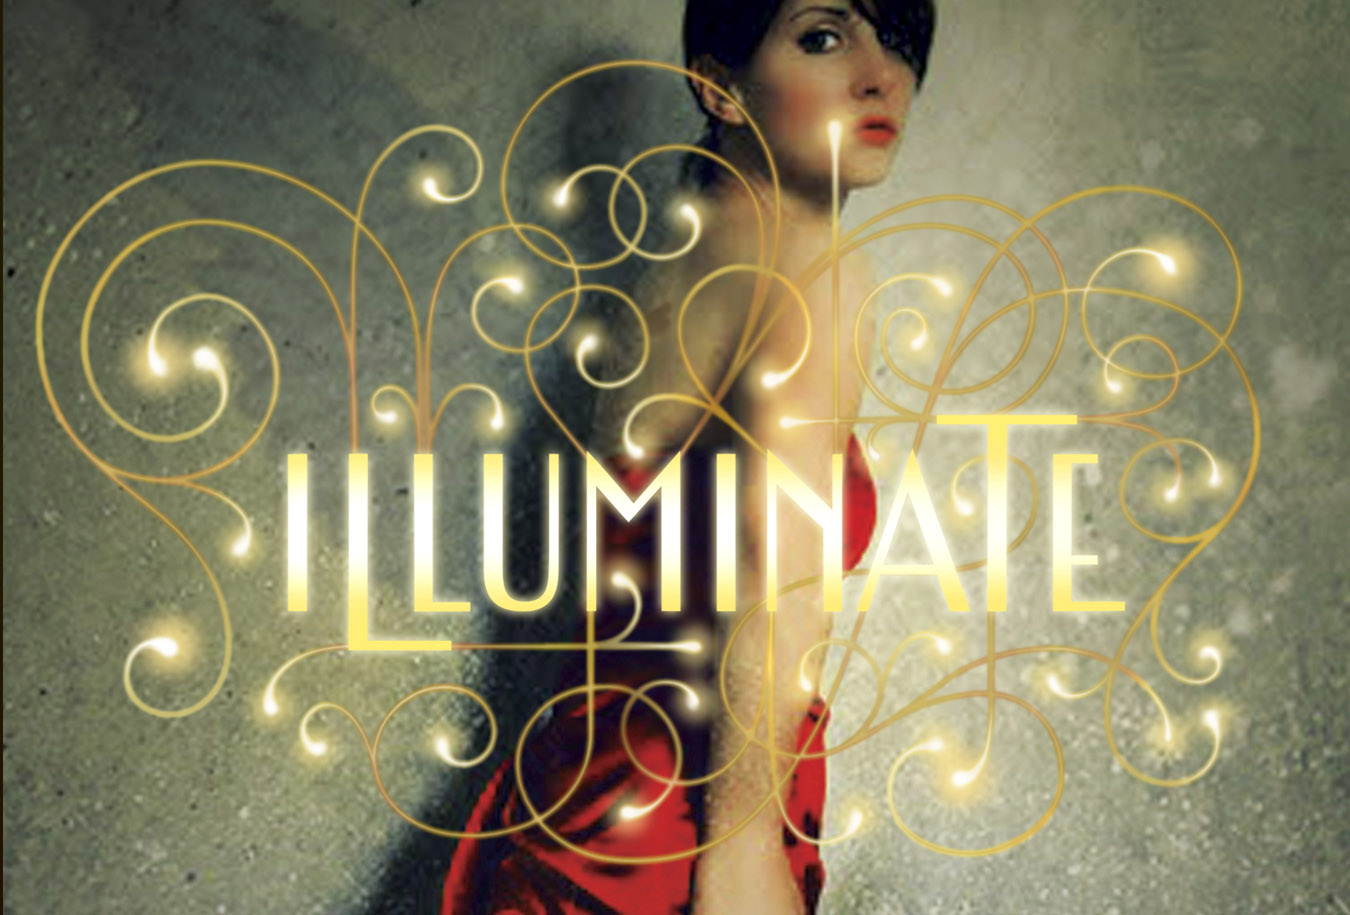 Illuminate-LeahPalmerPreiss